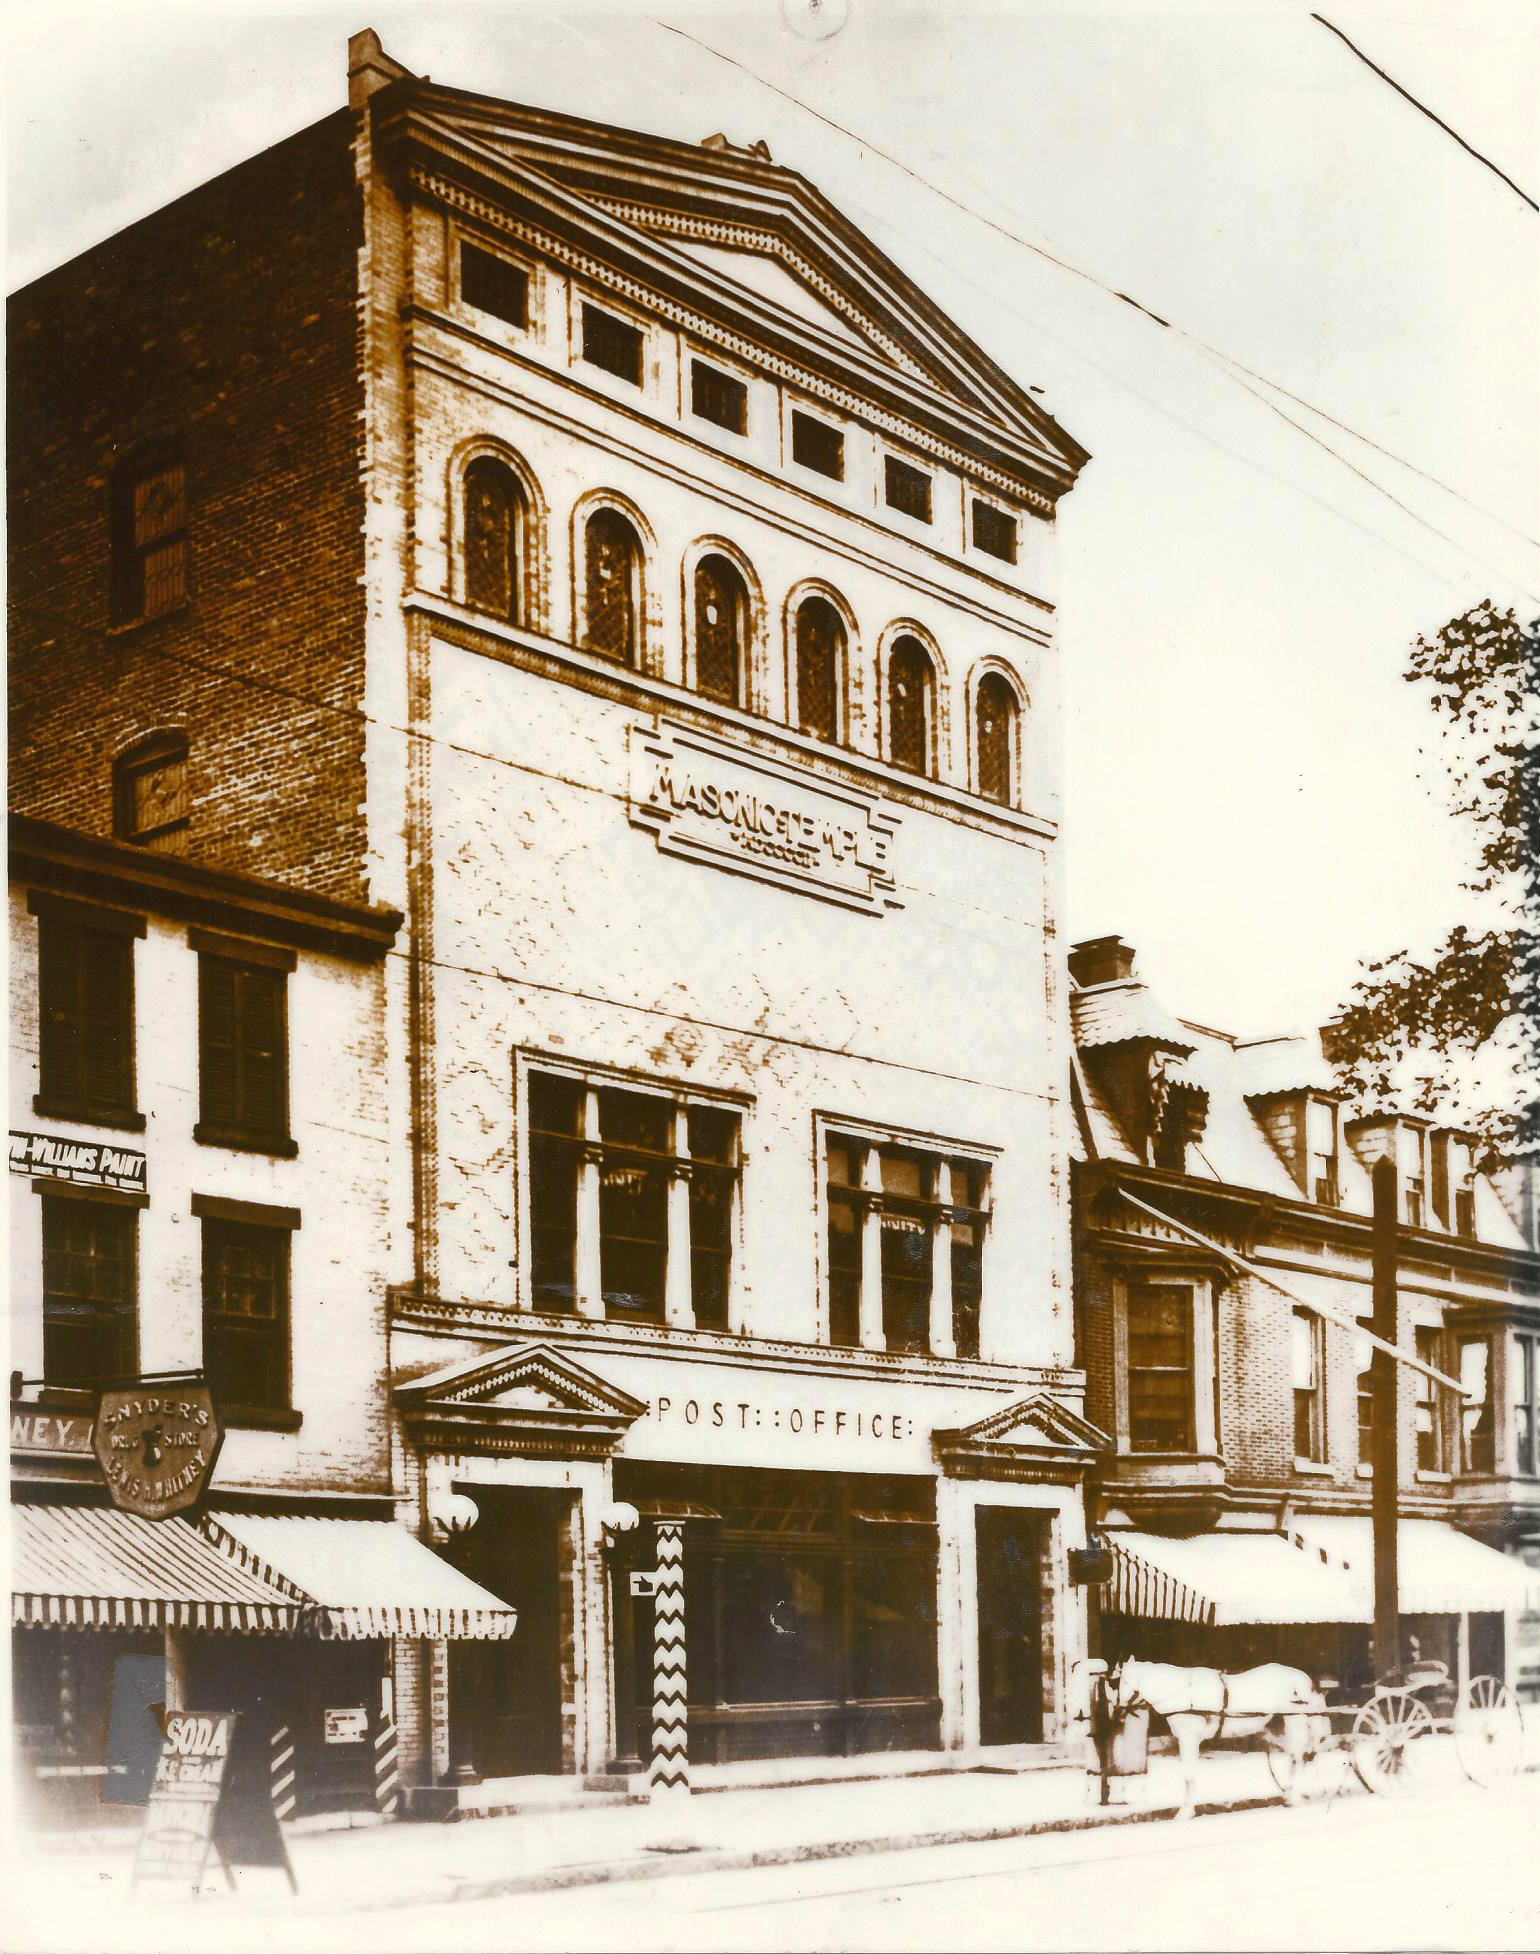 Howie's Jewelers original location 607 Second Avenue in Lansingburgh before it was converted to a store front